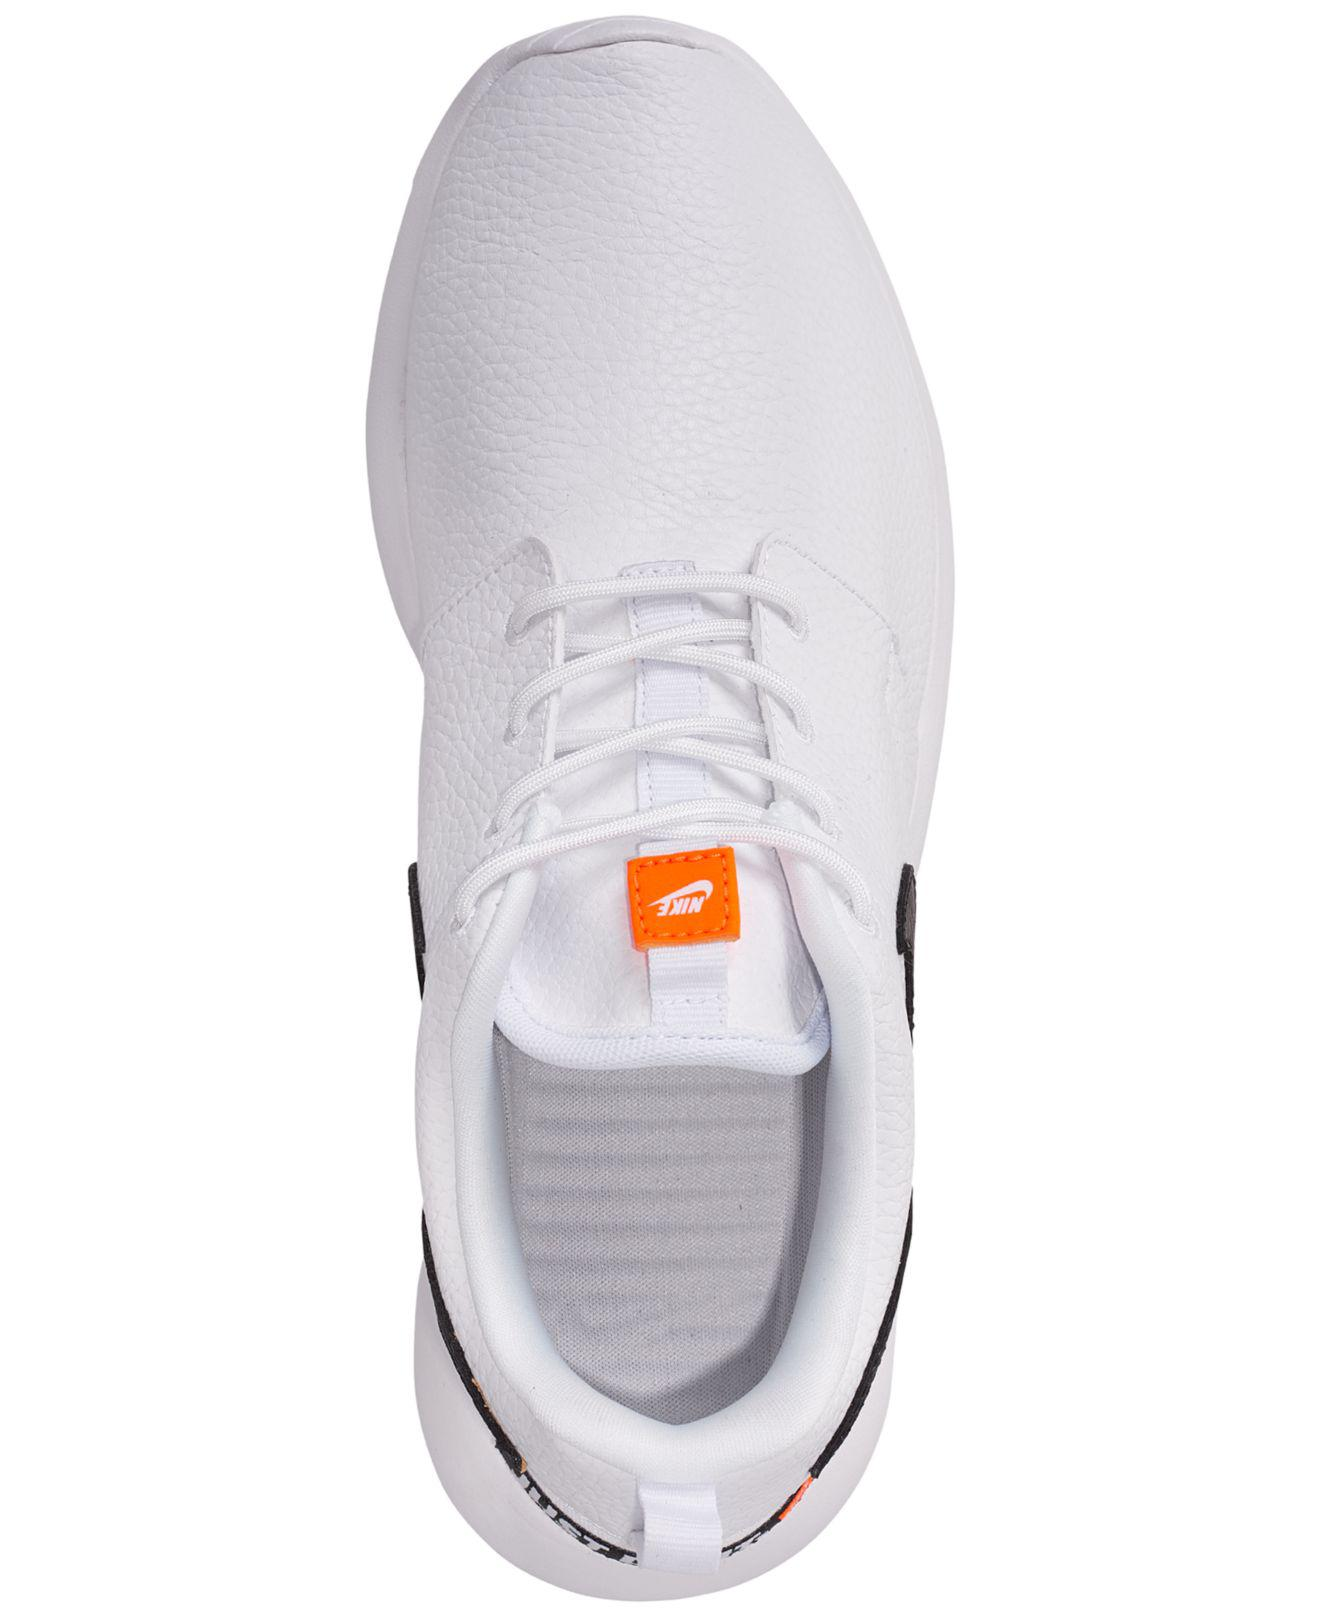 Nike Synthetic Roshe One Premium Just